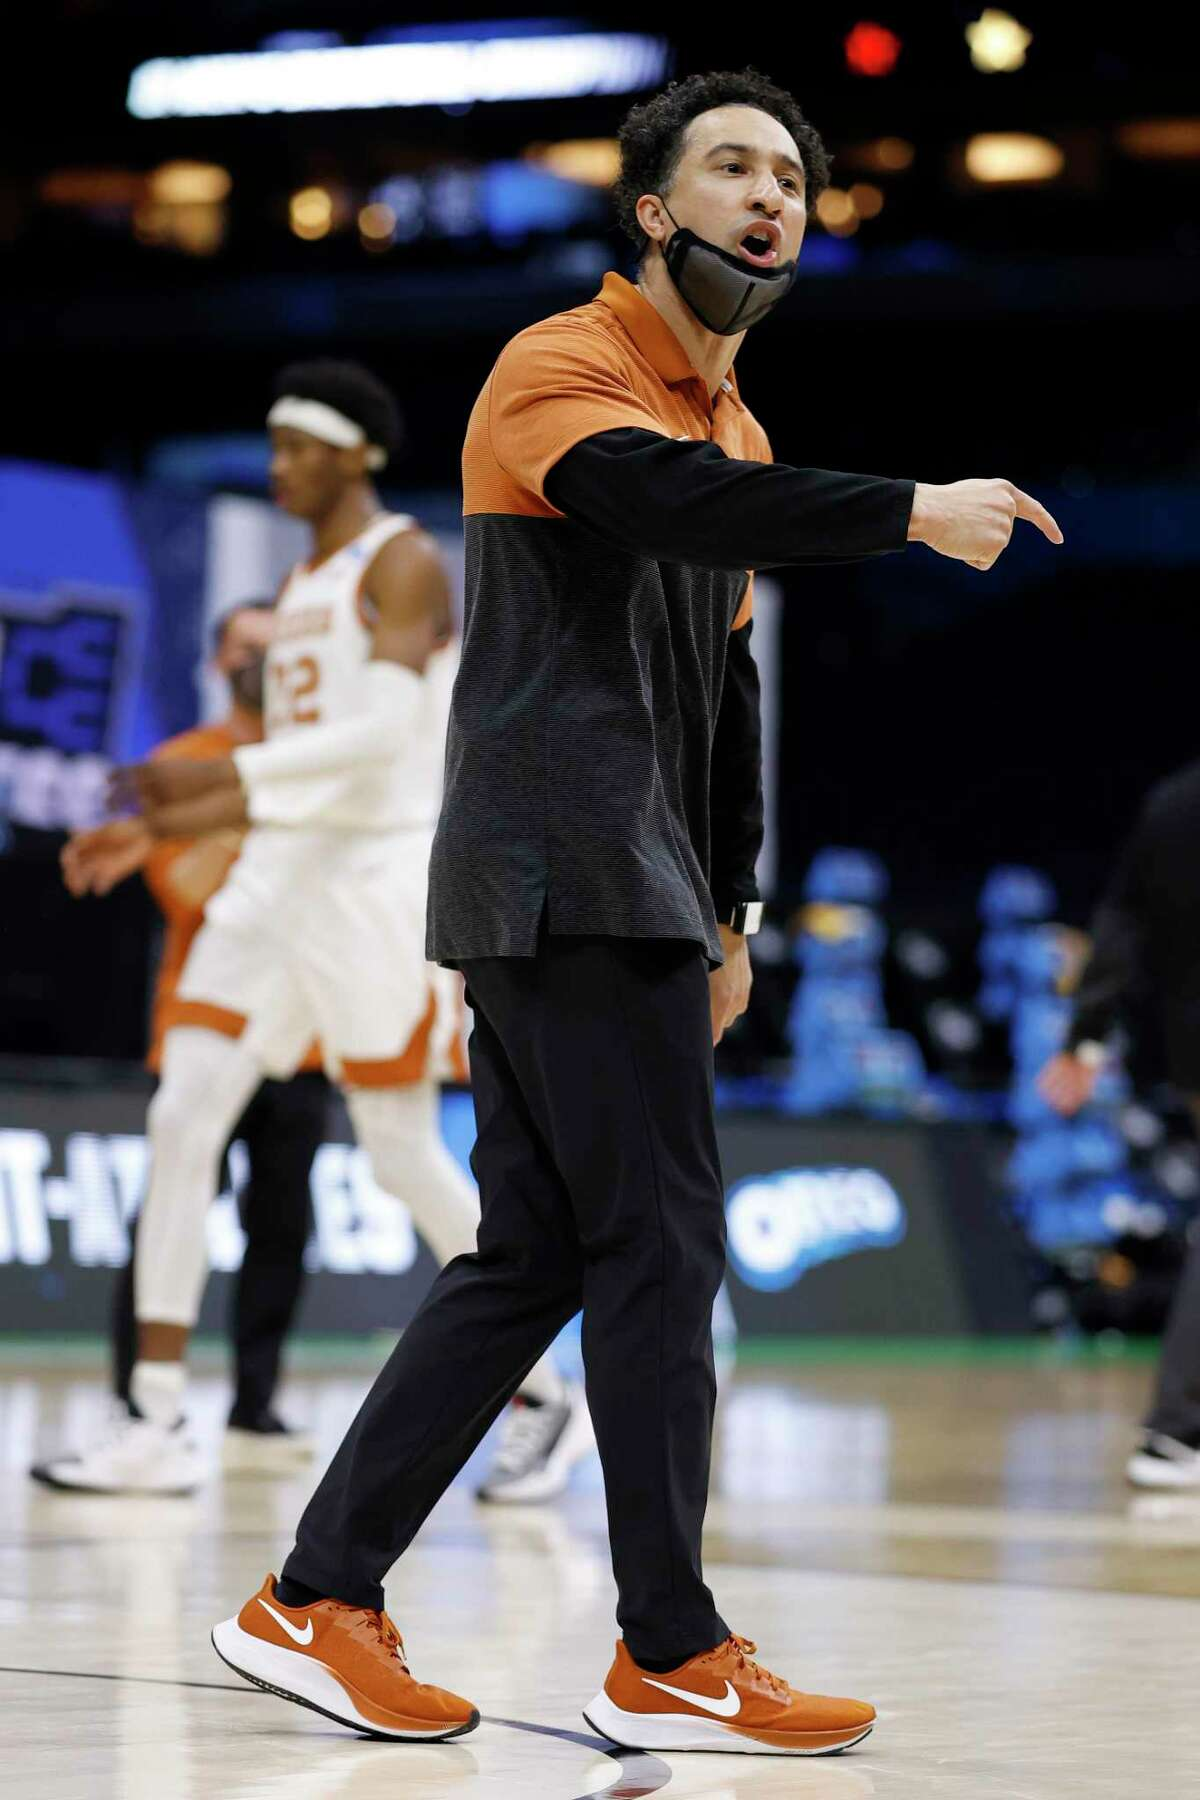 One week after a stunning early exit from the NCAA tournament, Texas and coach Shaka Smart are parting ways.